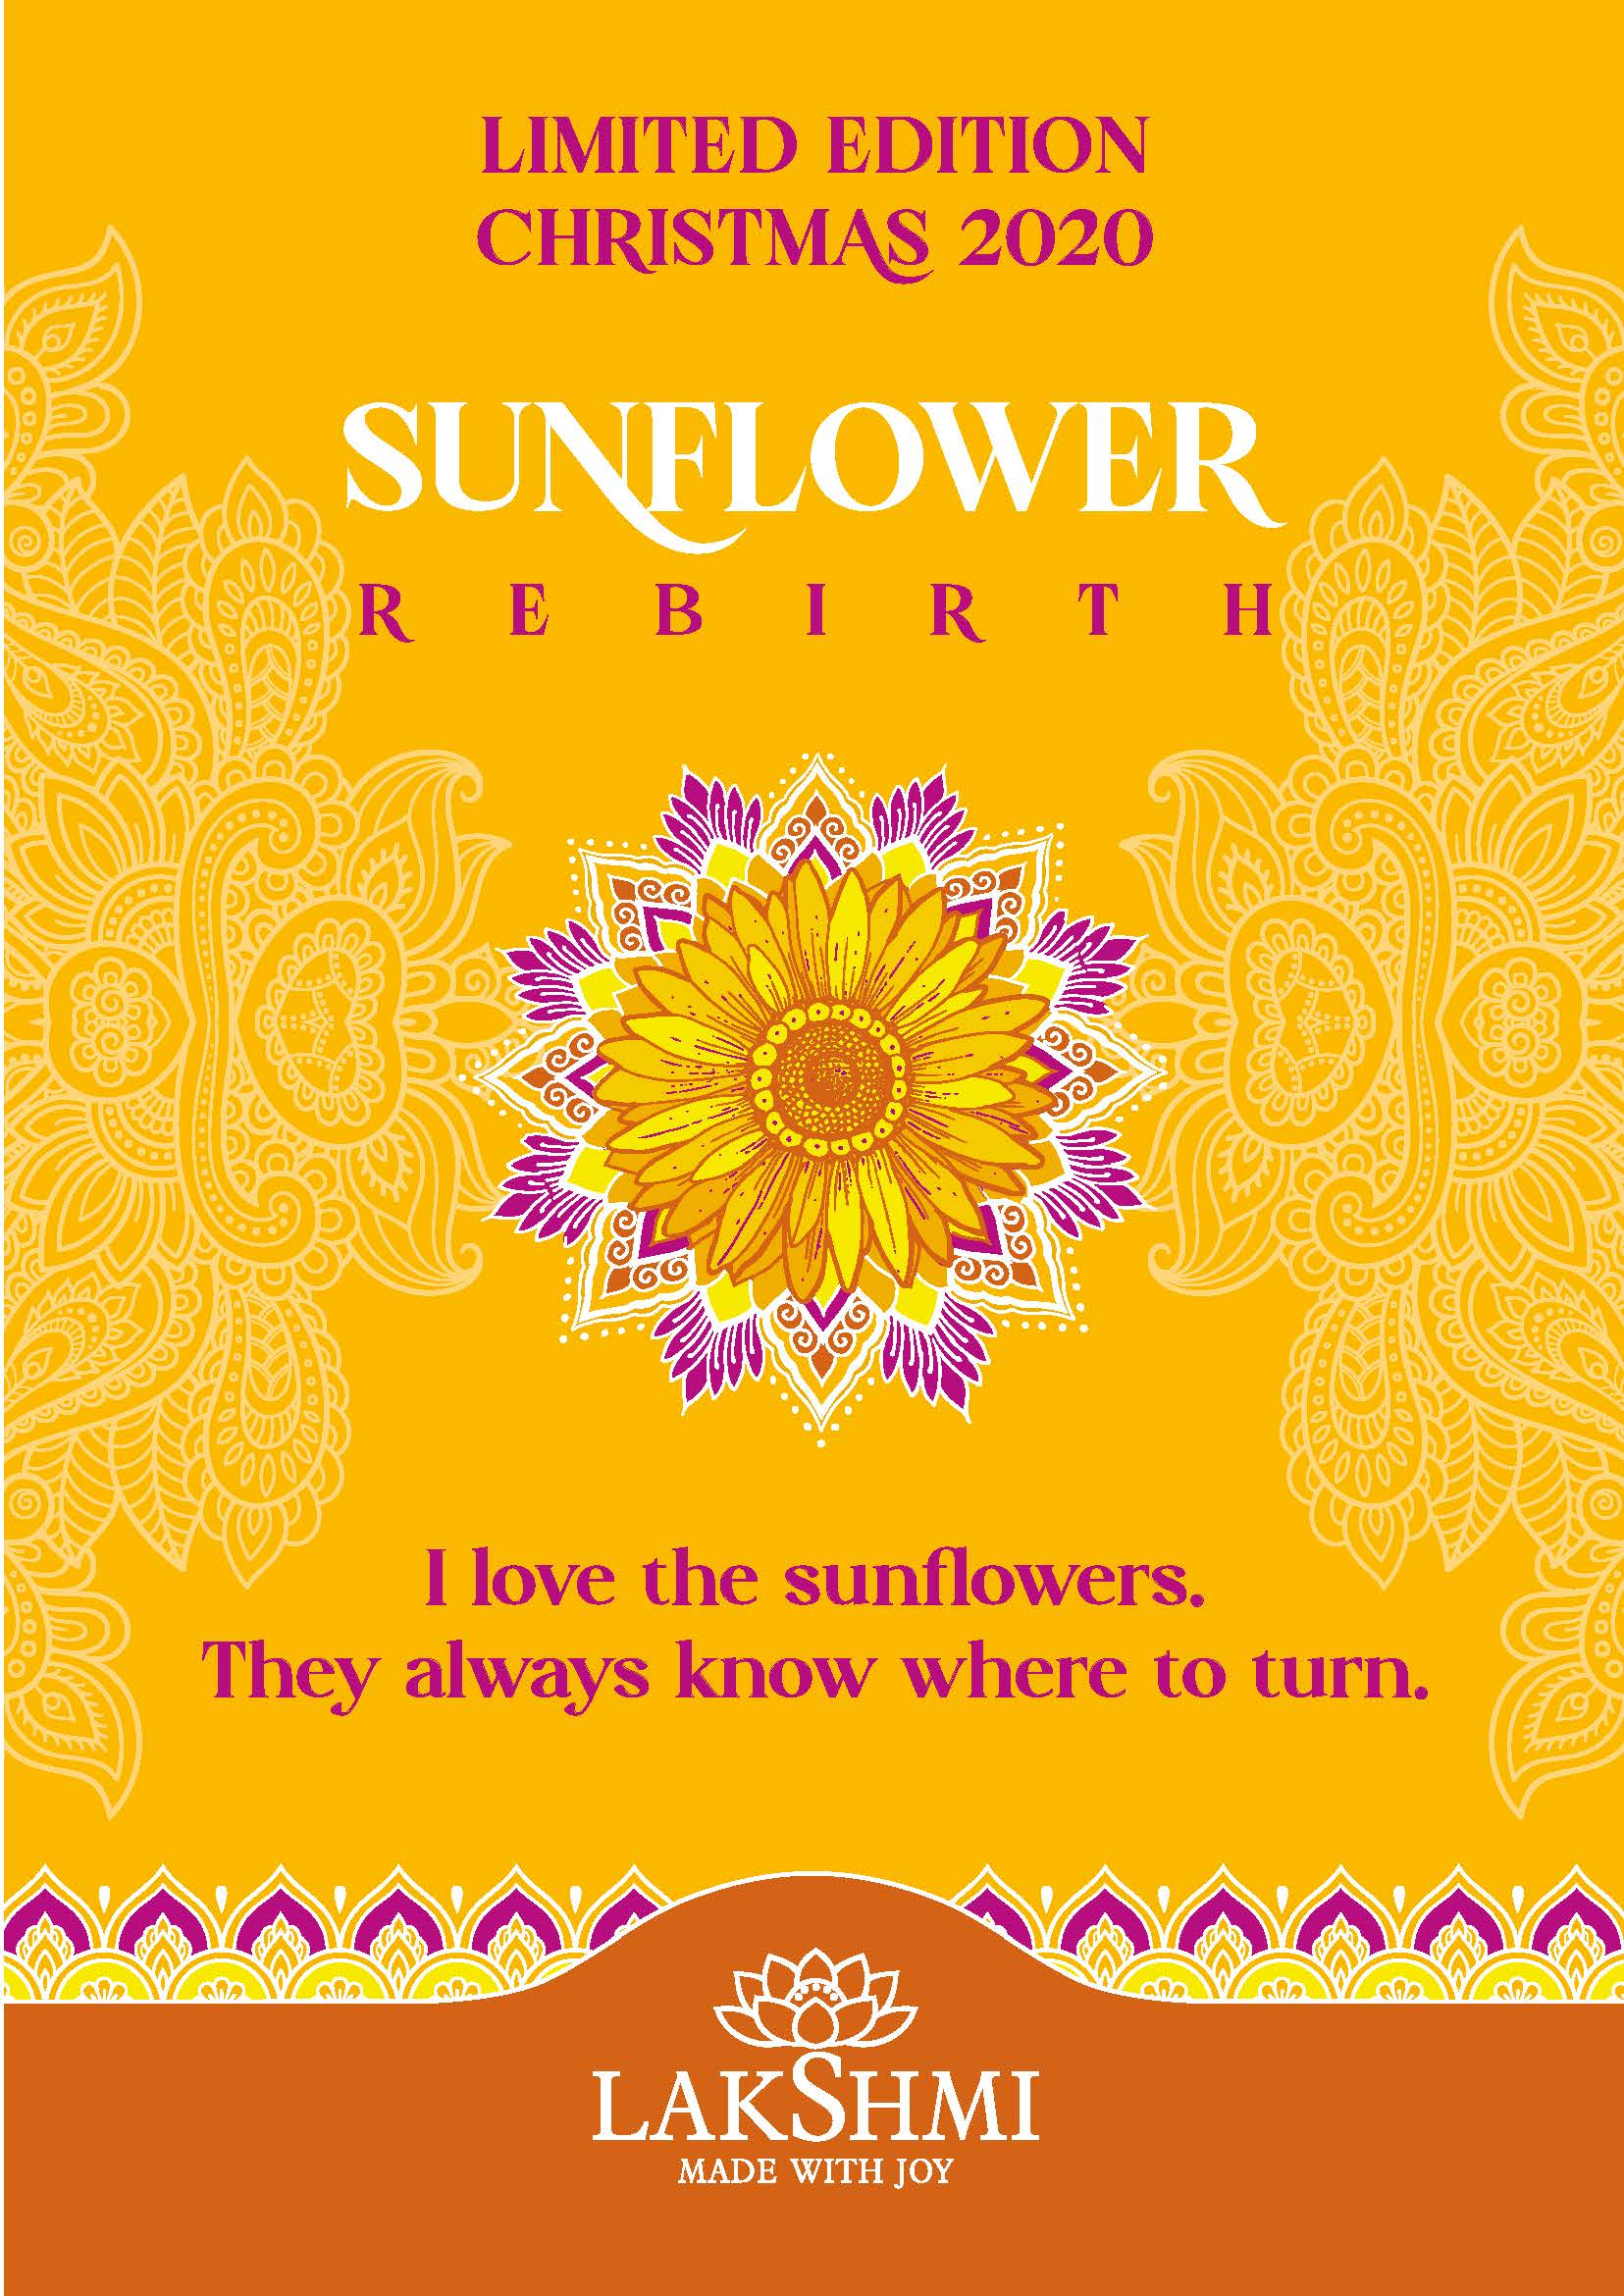 SUNFLOWER REBIRTH – limited edition body cream